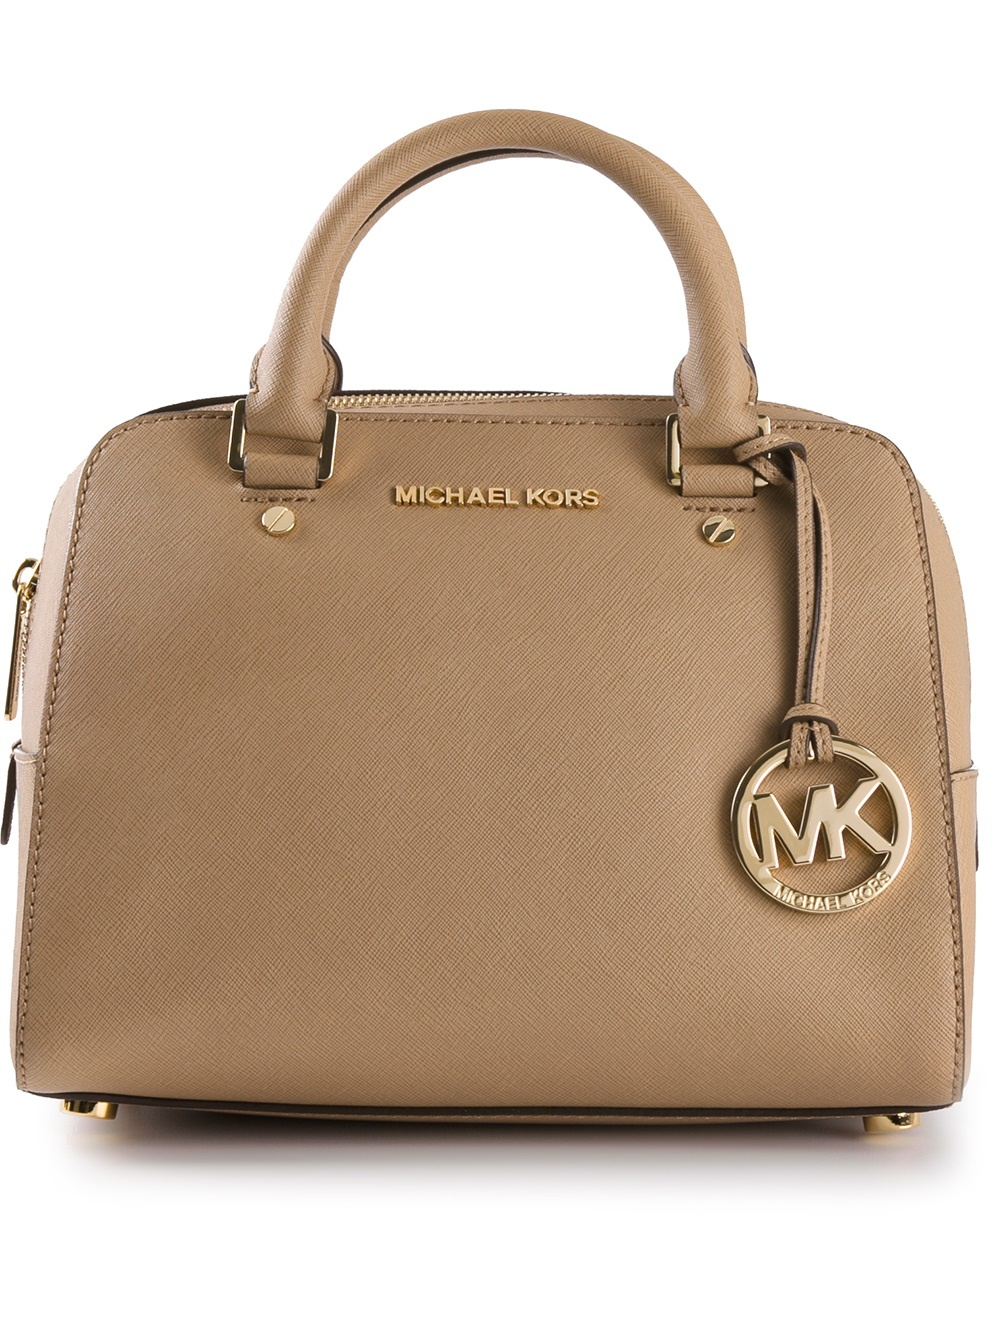 michael michael kors small tote bag in brown lyst. Black Bedroom Furniture Sets. Home Design Ideas